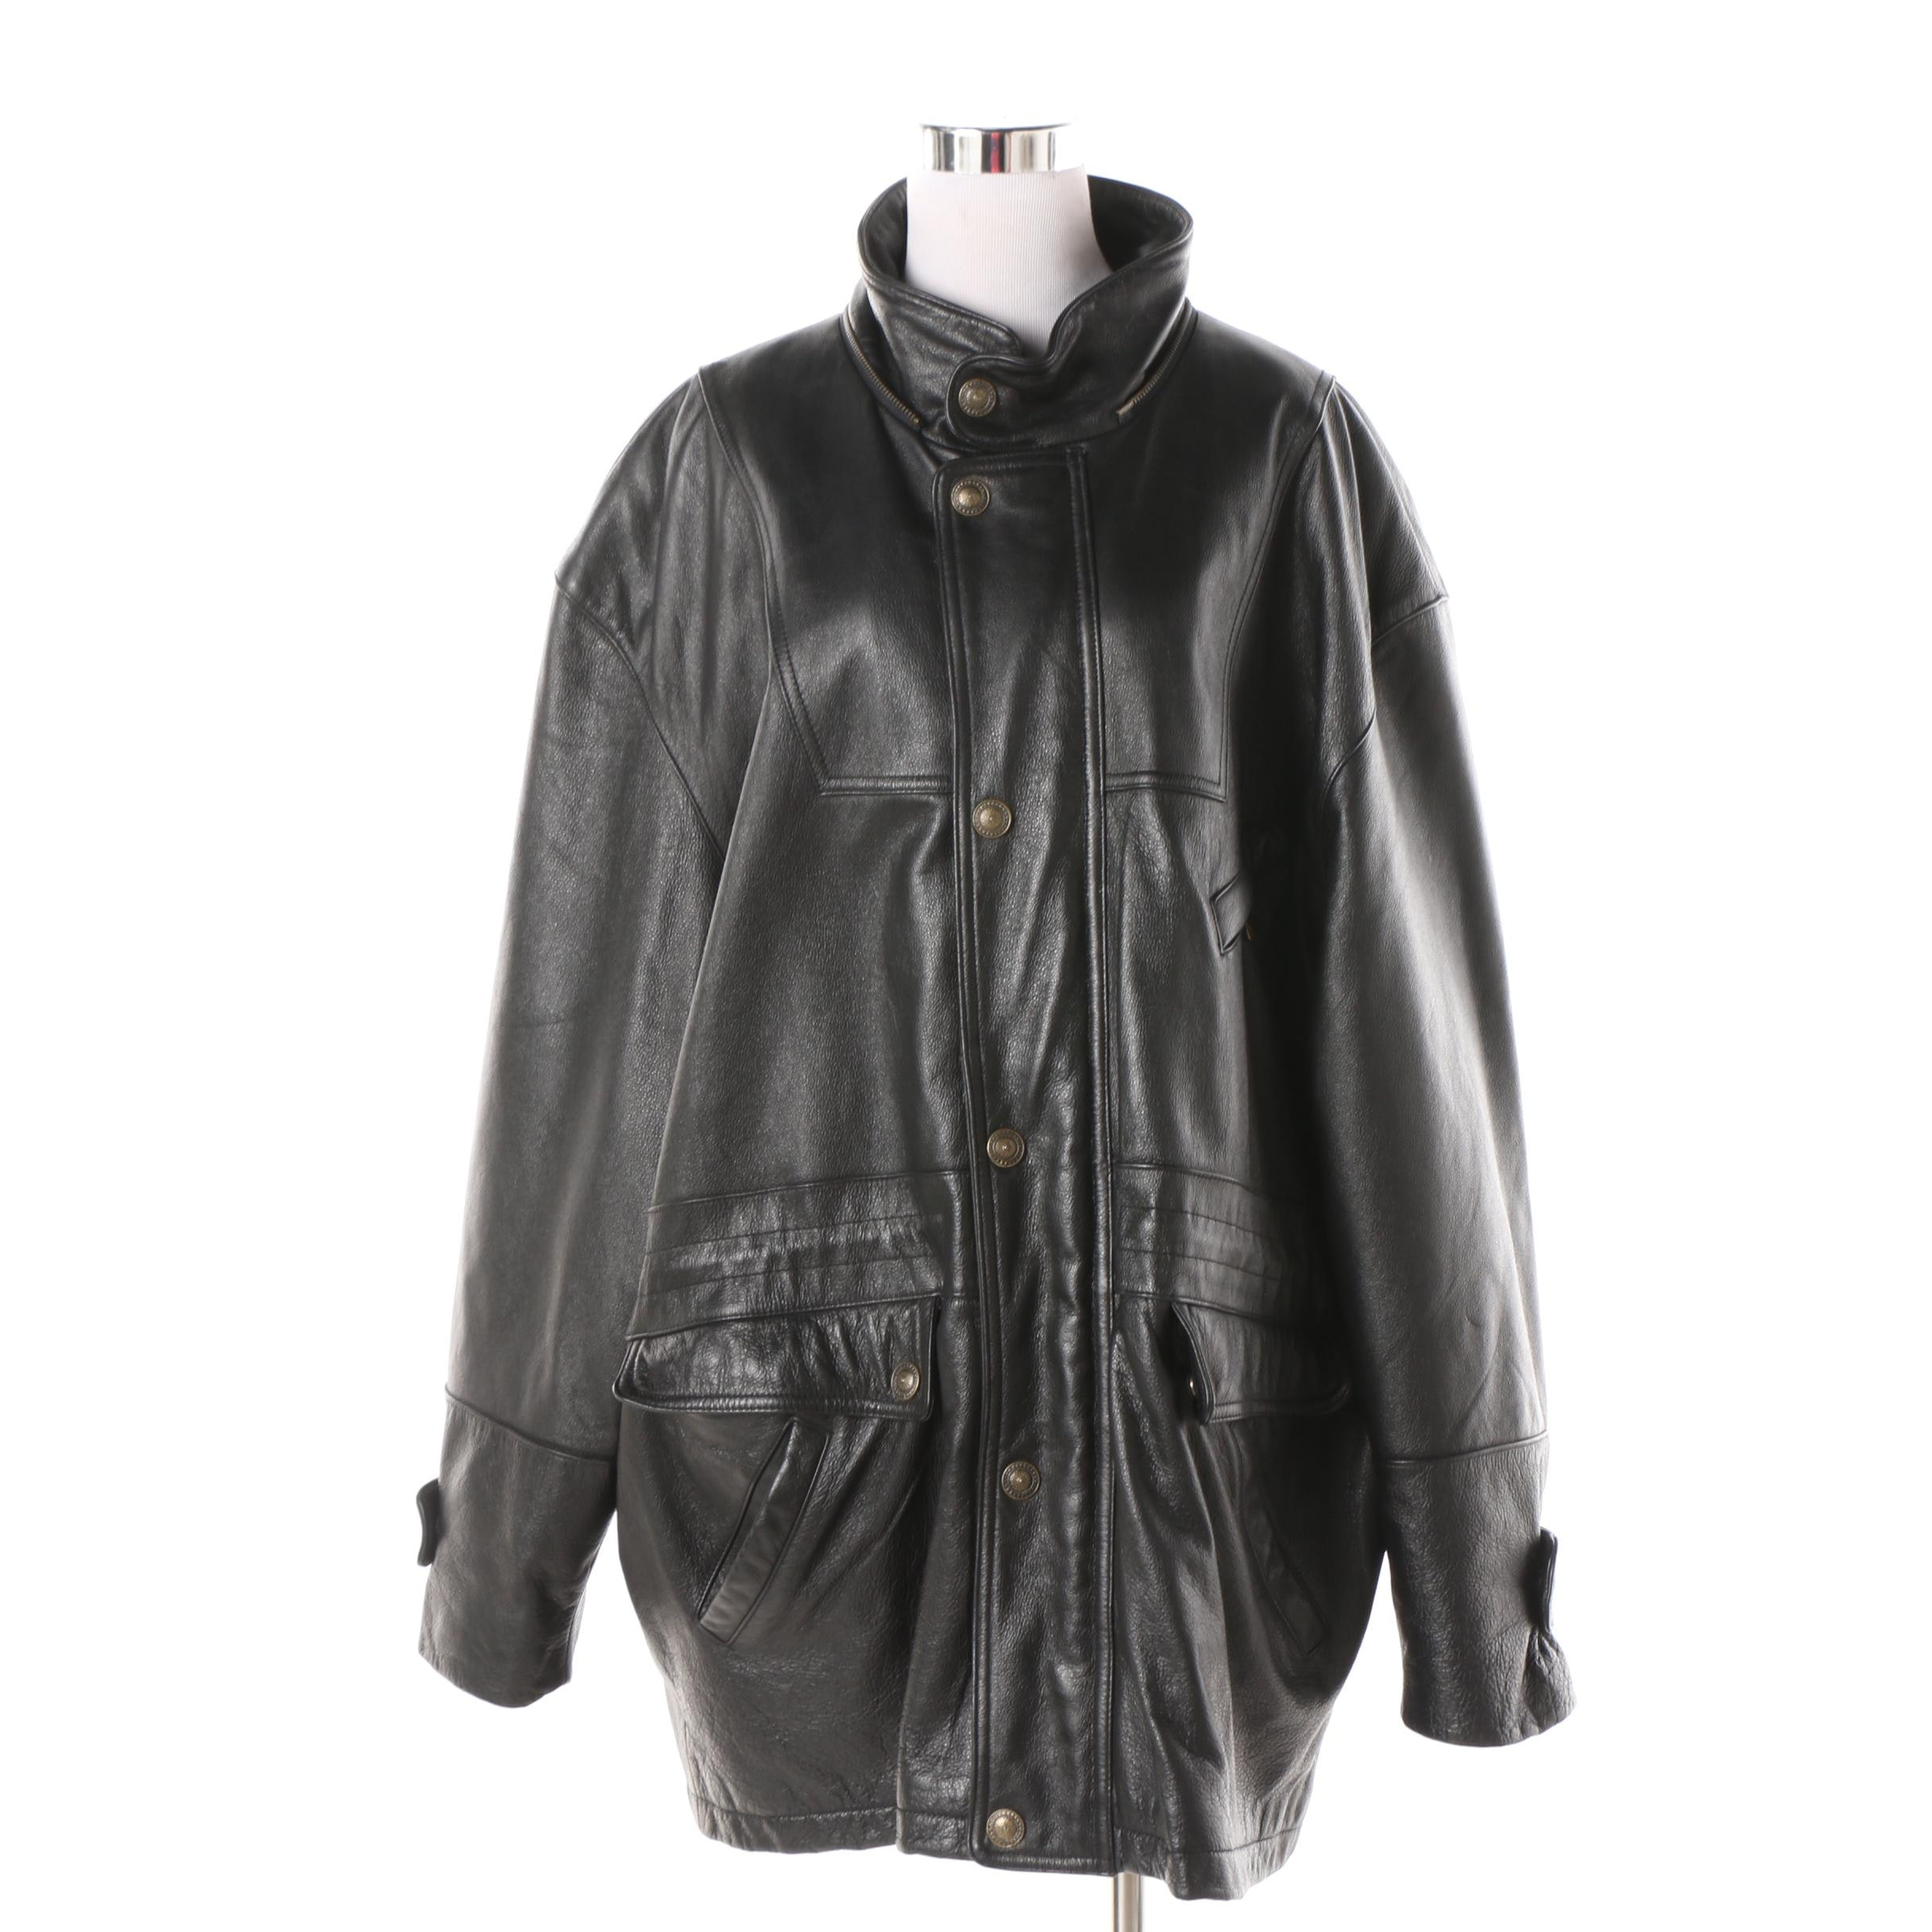 Men's Urban Cowboy Black Leather Coat